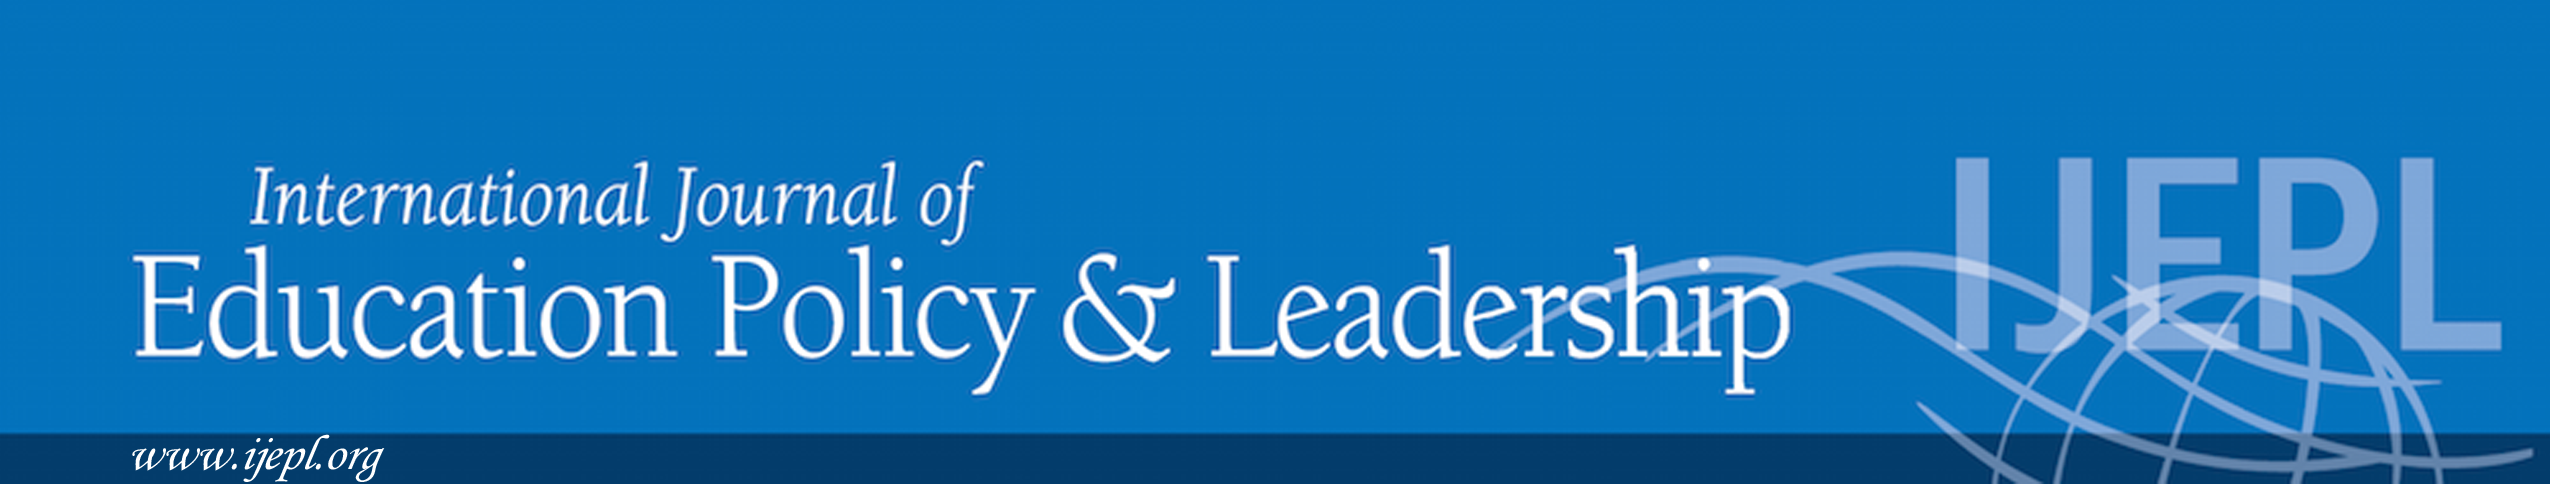 Welcome to the web site of the International Journal of Education Policy and Leadership